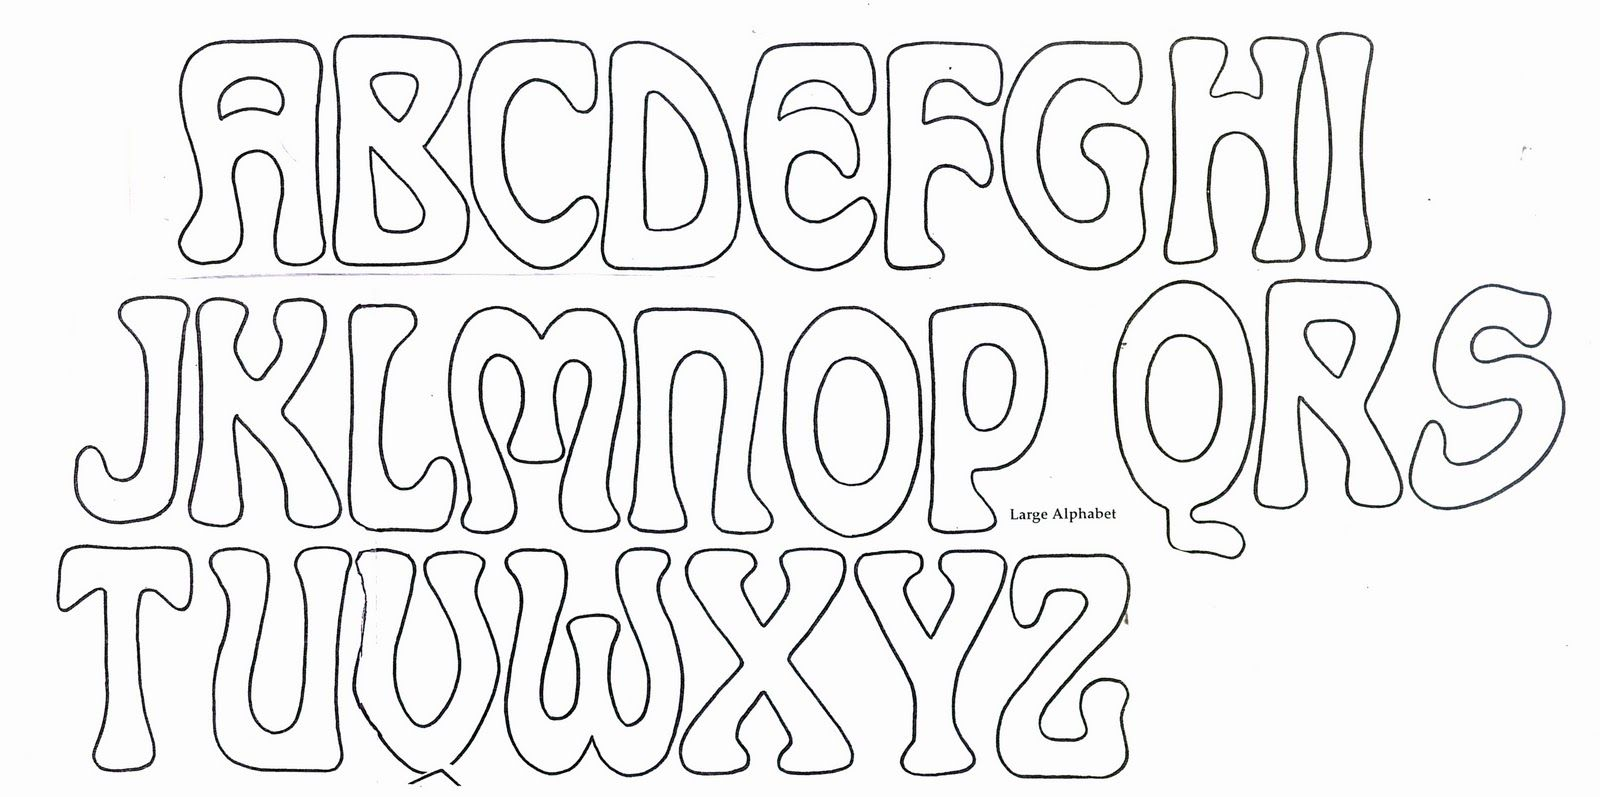 Big Bubble Letters To Trace